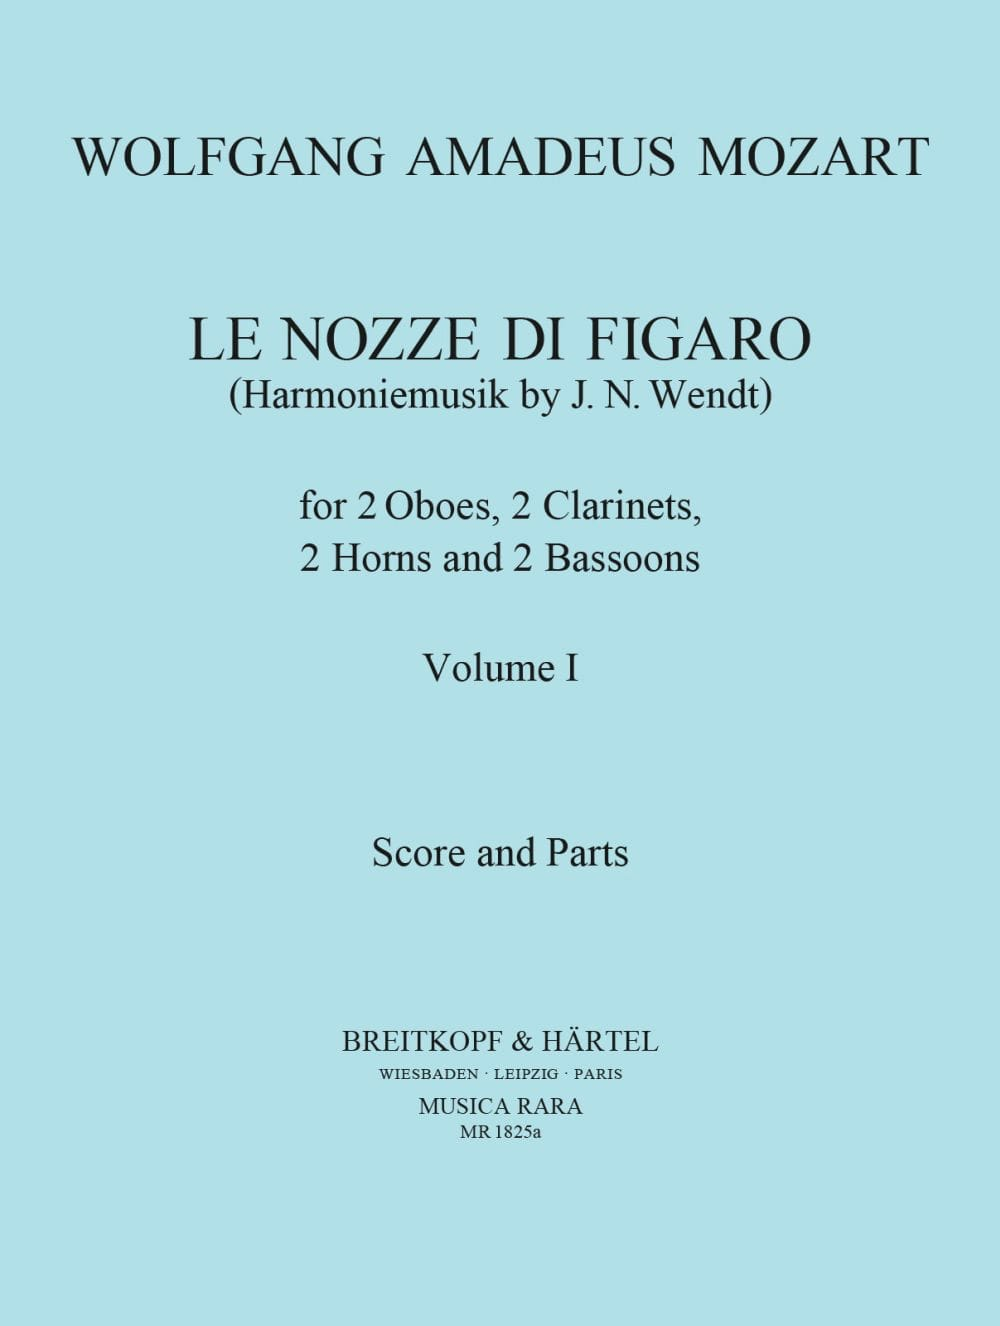 MOZART - The Nozze di Figaro Volume 1 - Harmoniemusik - Score Parts - Partition - di-arezzo.co.uk